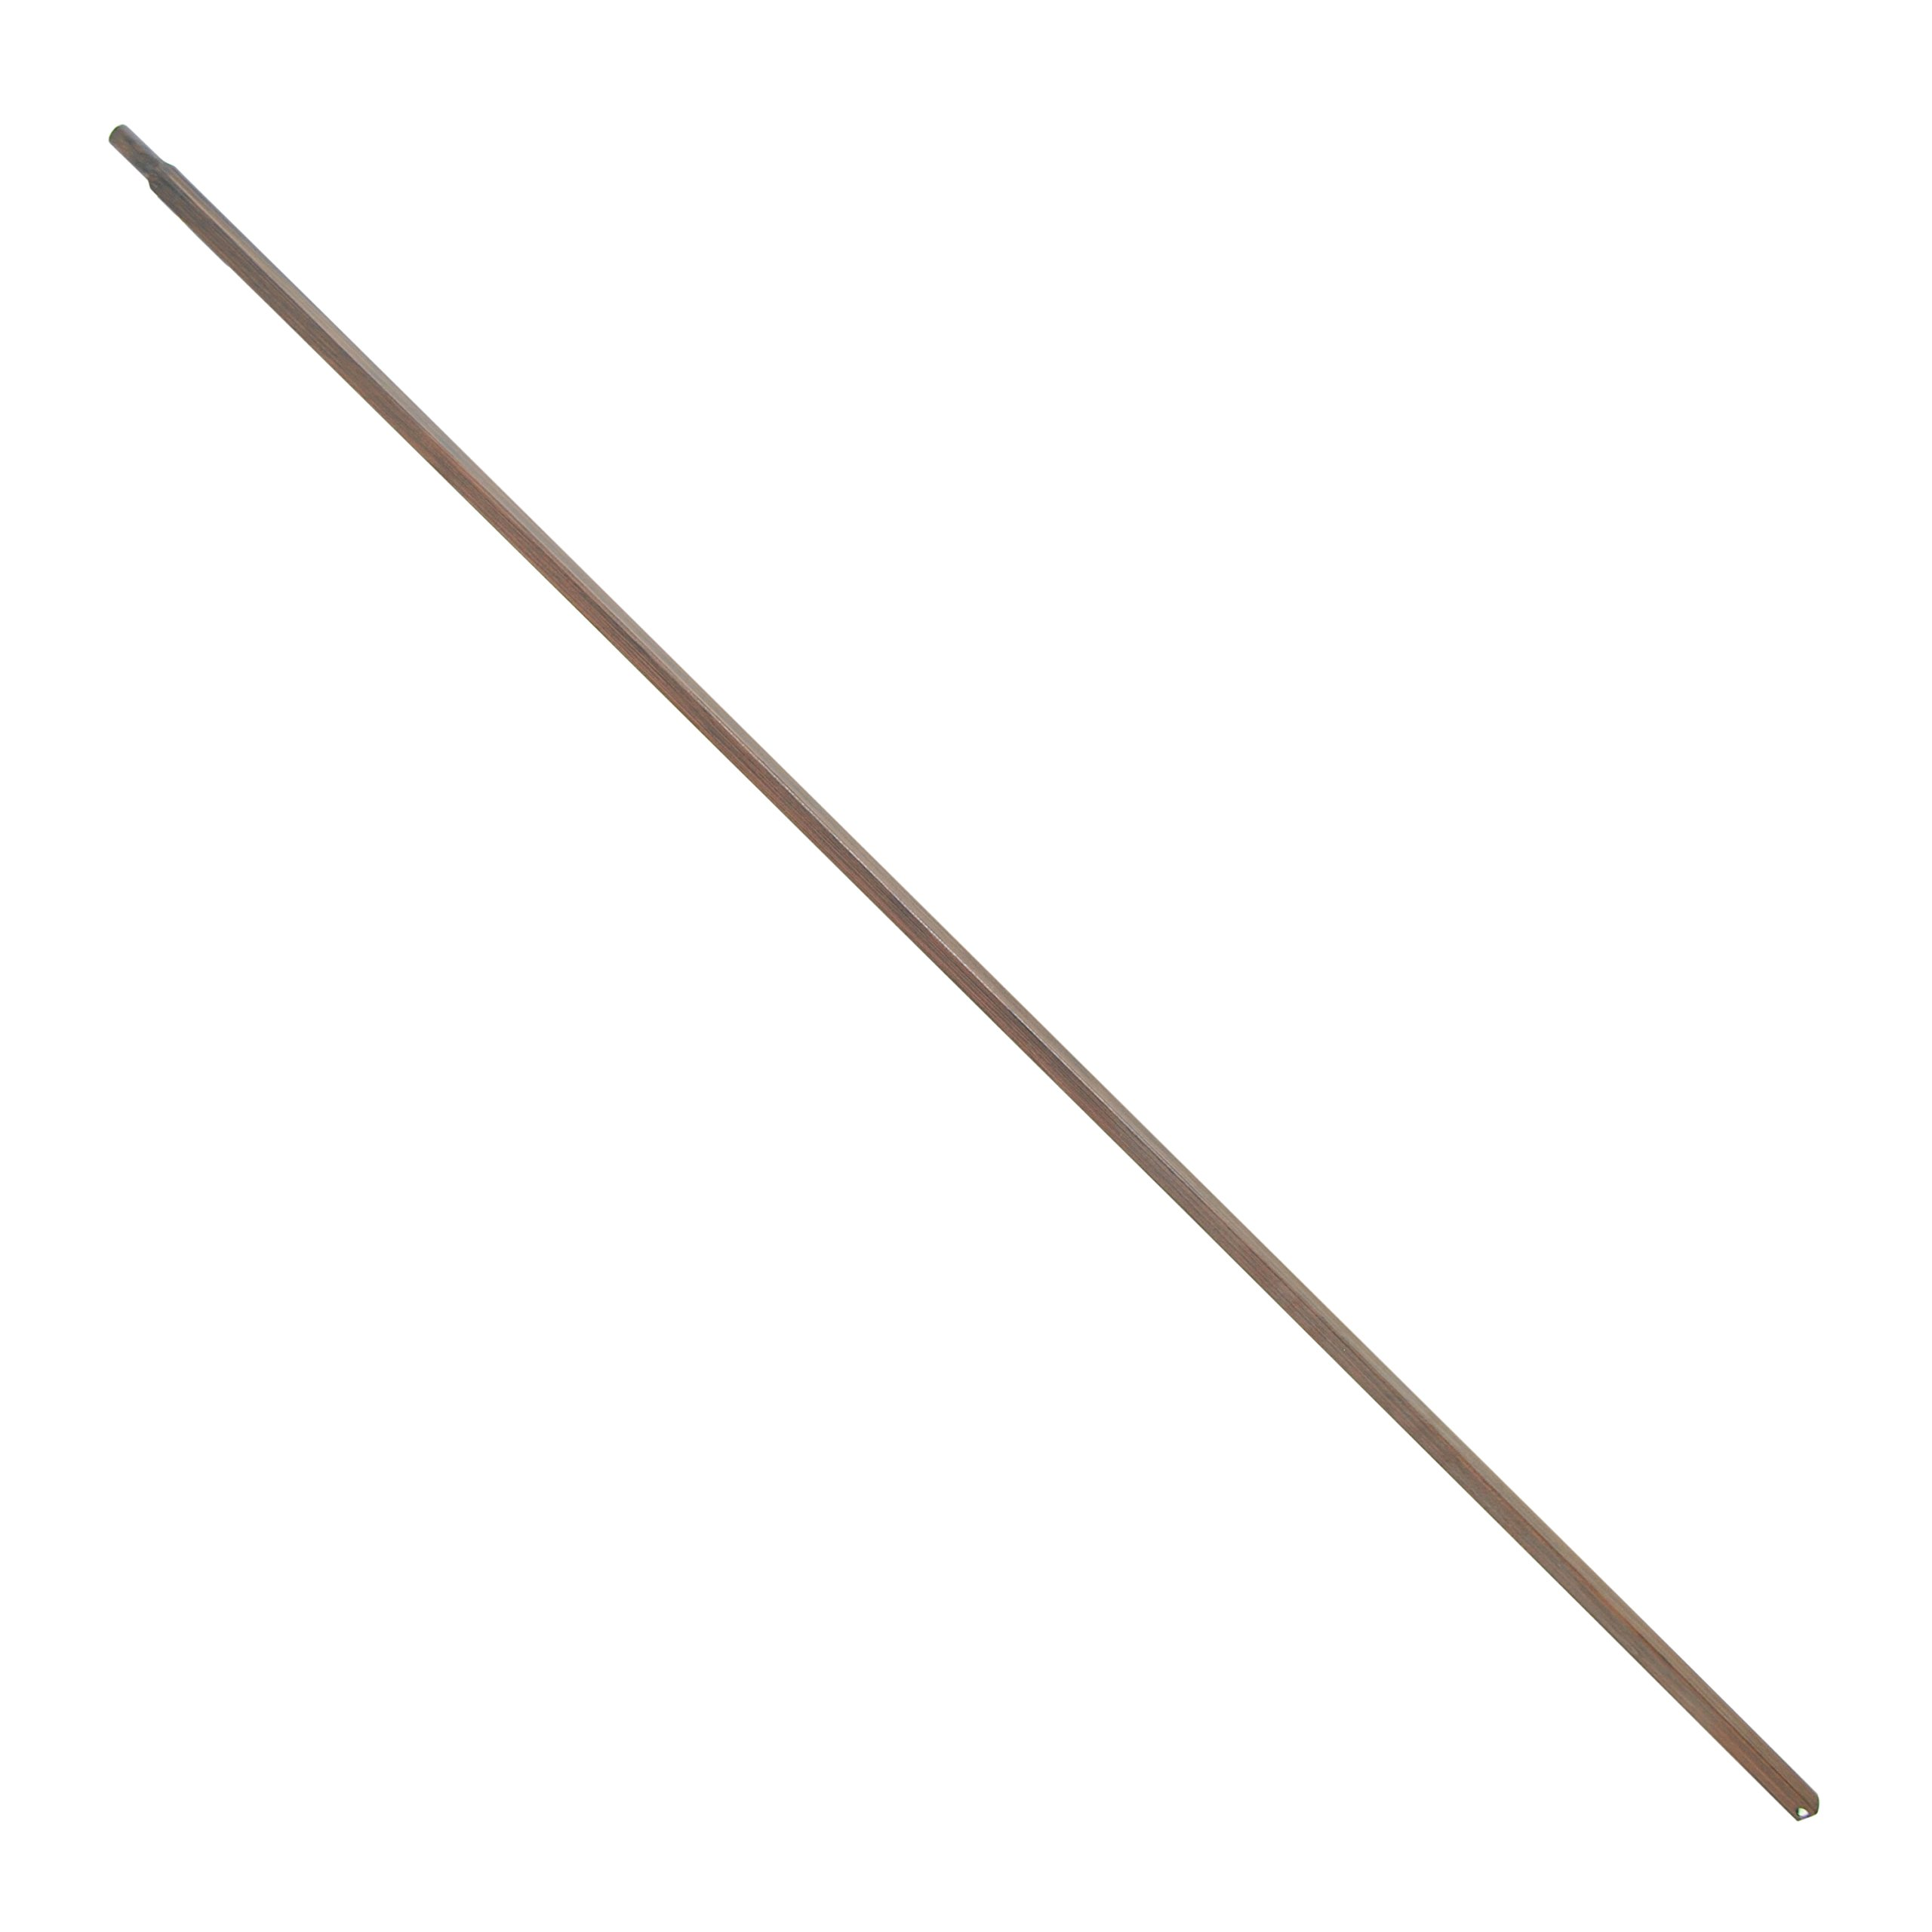 ALEKO BSTR100B Baluster Stair Spindle Supply Simple Square Design 1/2 Inch Oil Rubbed Cast Iron Bronze Finished Lot of 10